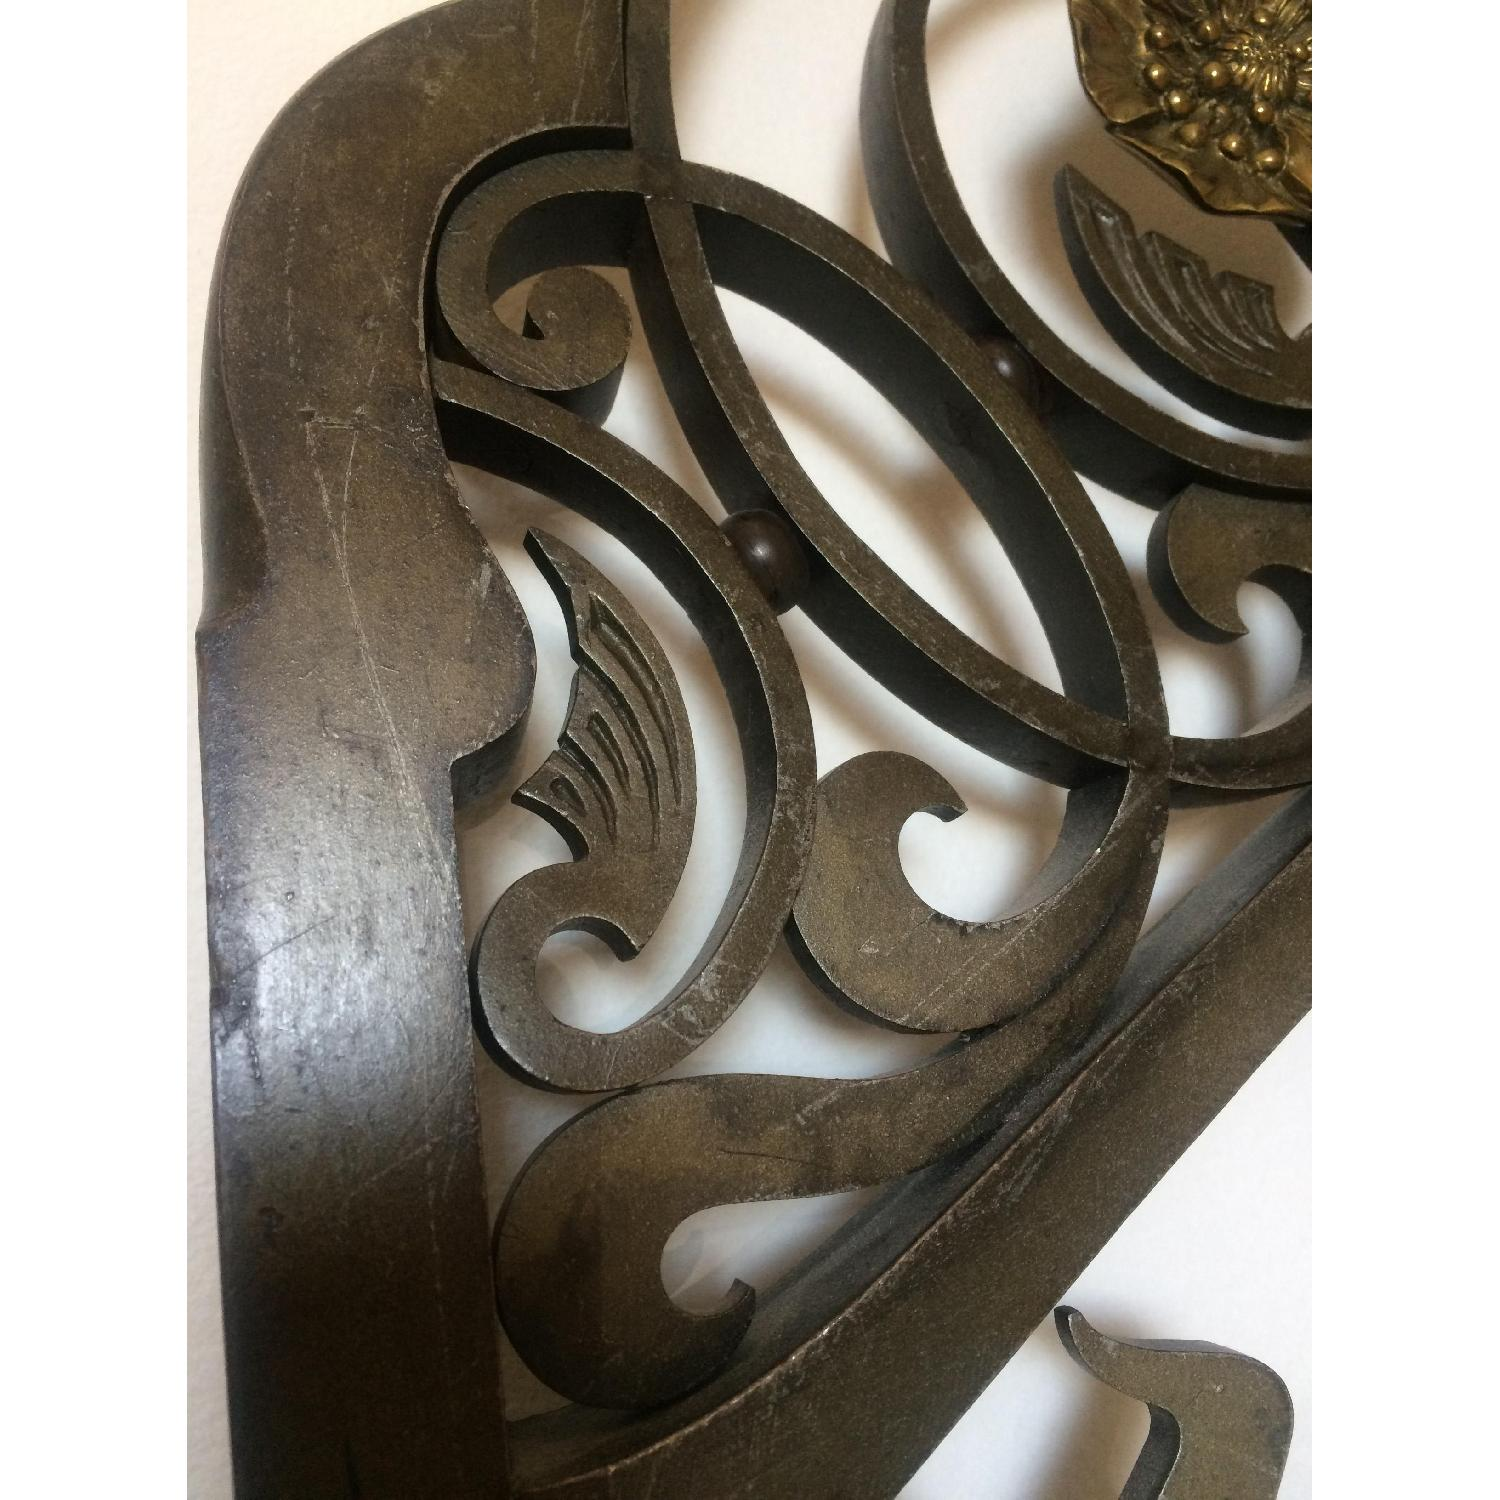 Early 20th-Century French Art Nouveau Wrought Iron and Gilt Bronze Headboard - image-9